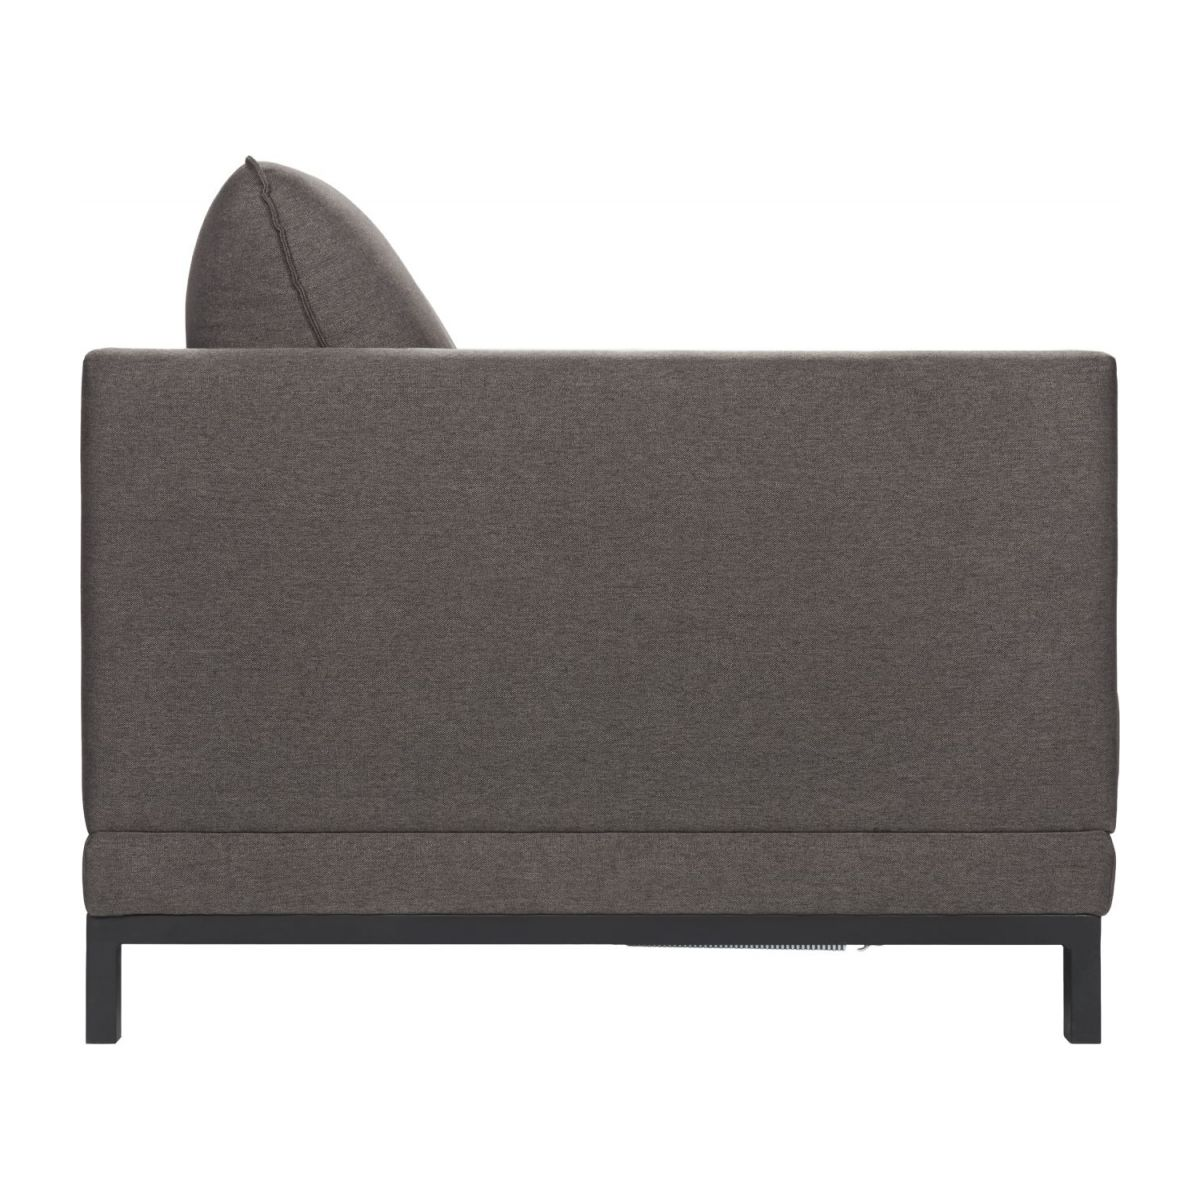 Fabric 3-seater sofa bed, grey n°6